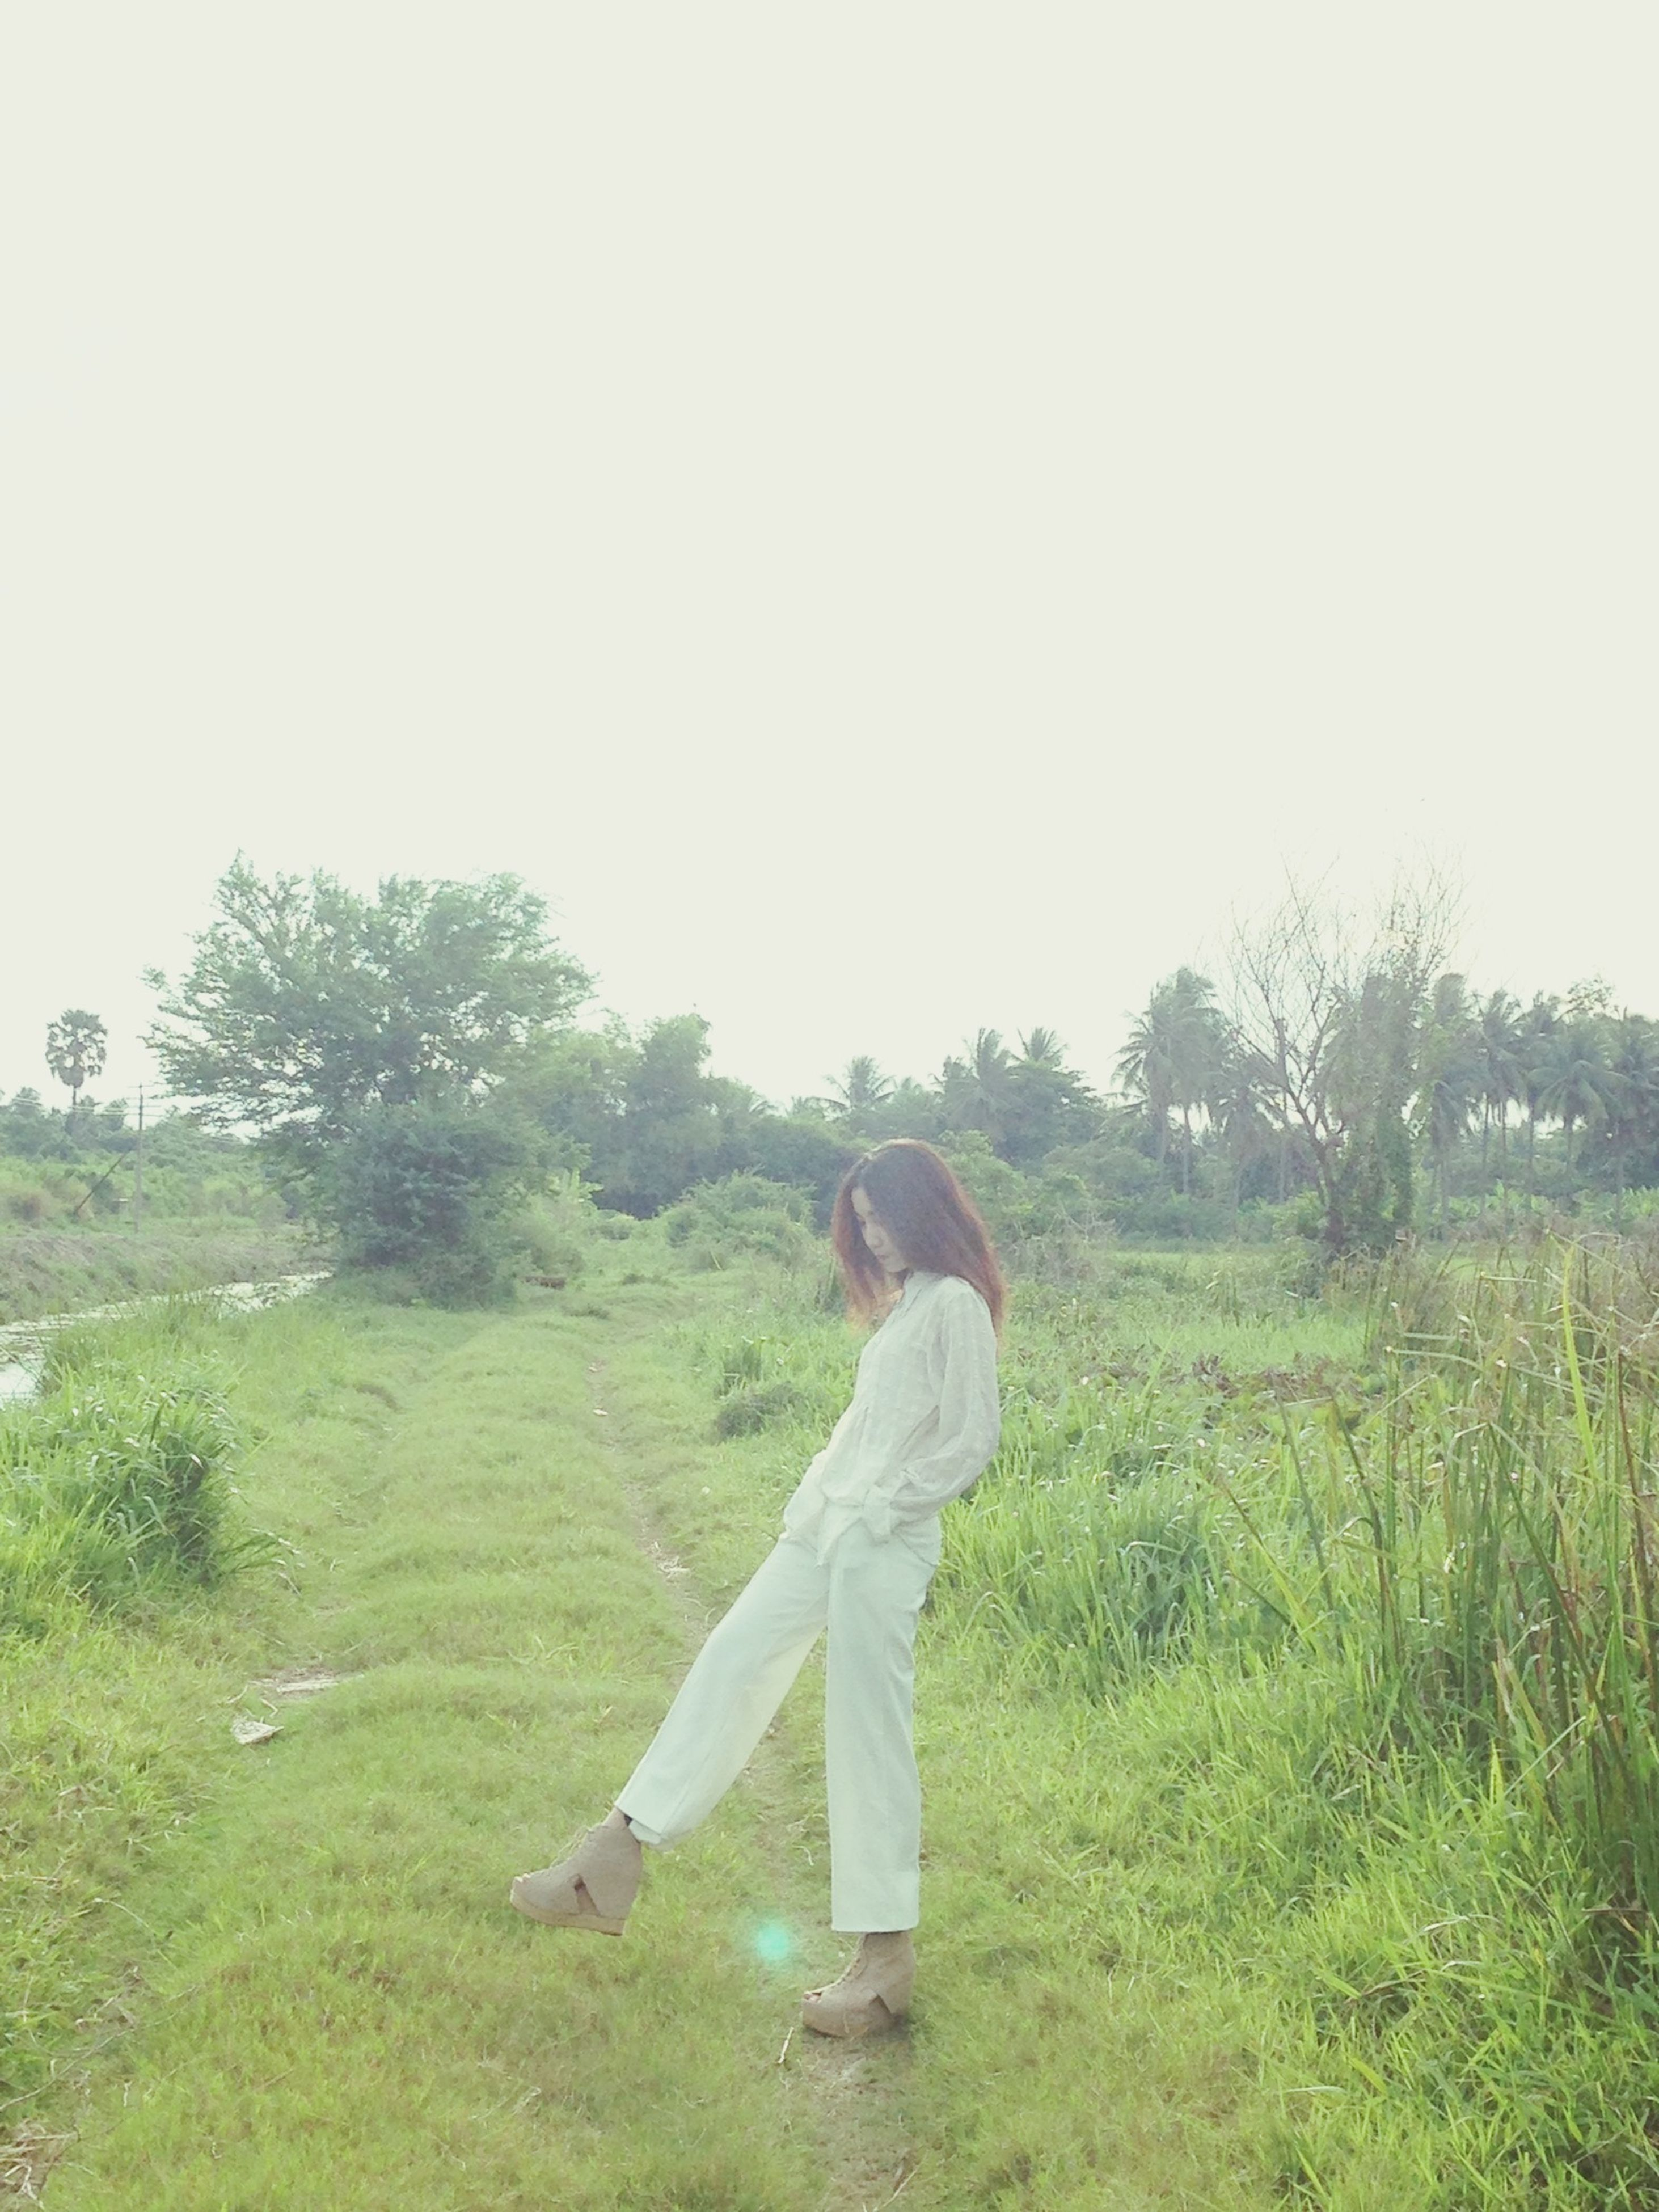 grass, lifestyles, full length, field, leisure activity, casual clothing, clear sky, grassy, person, standing, young adult, tree, three quarter length, green color, copy space, nature, growth, young women